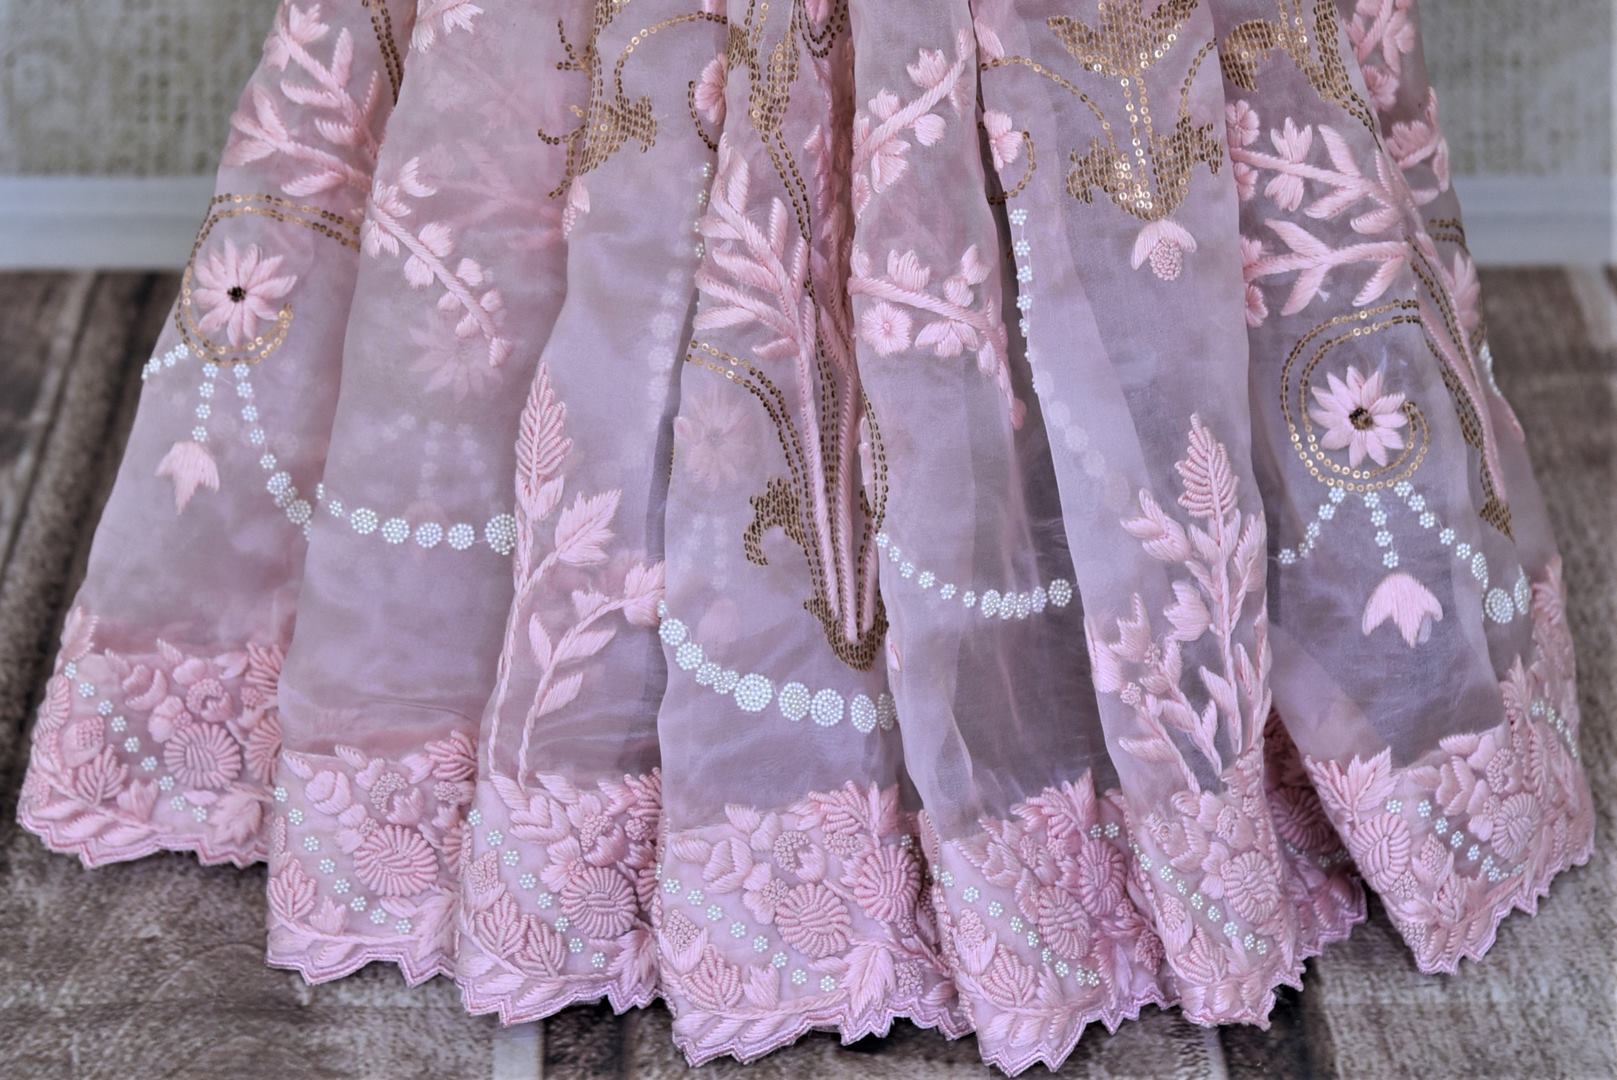 Buy beautiful baby pink hand embroidered organza saree online in USA. Enhance your traditional style at weddings and festive occasions with beautifully curated collection of embroidered sarees, pure silk sarees, designer saris from Pure Elegance Indian clothing store in USA.-pleats